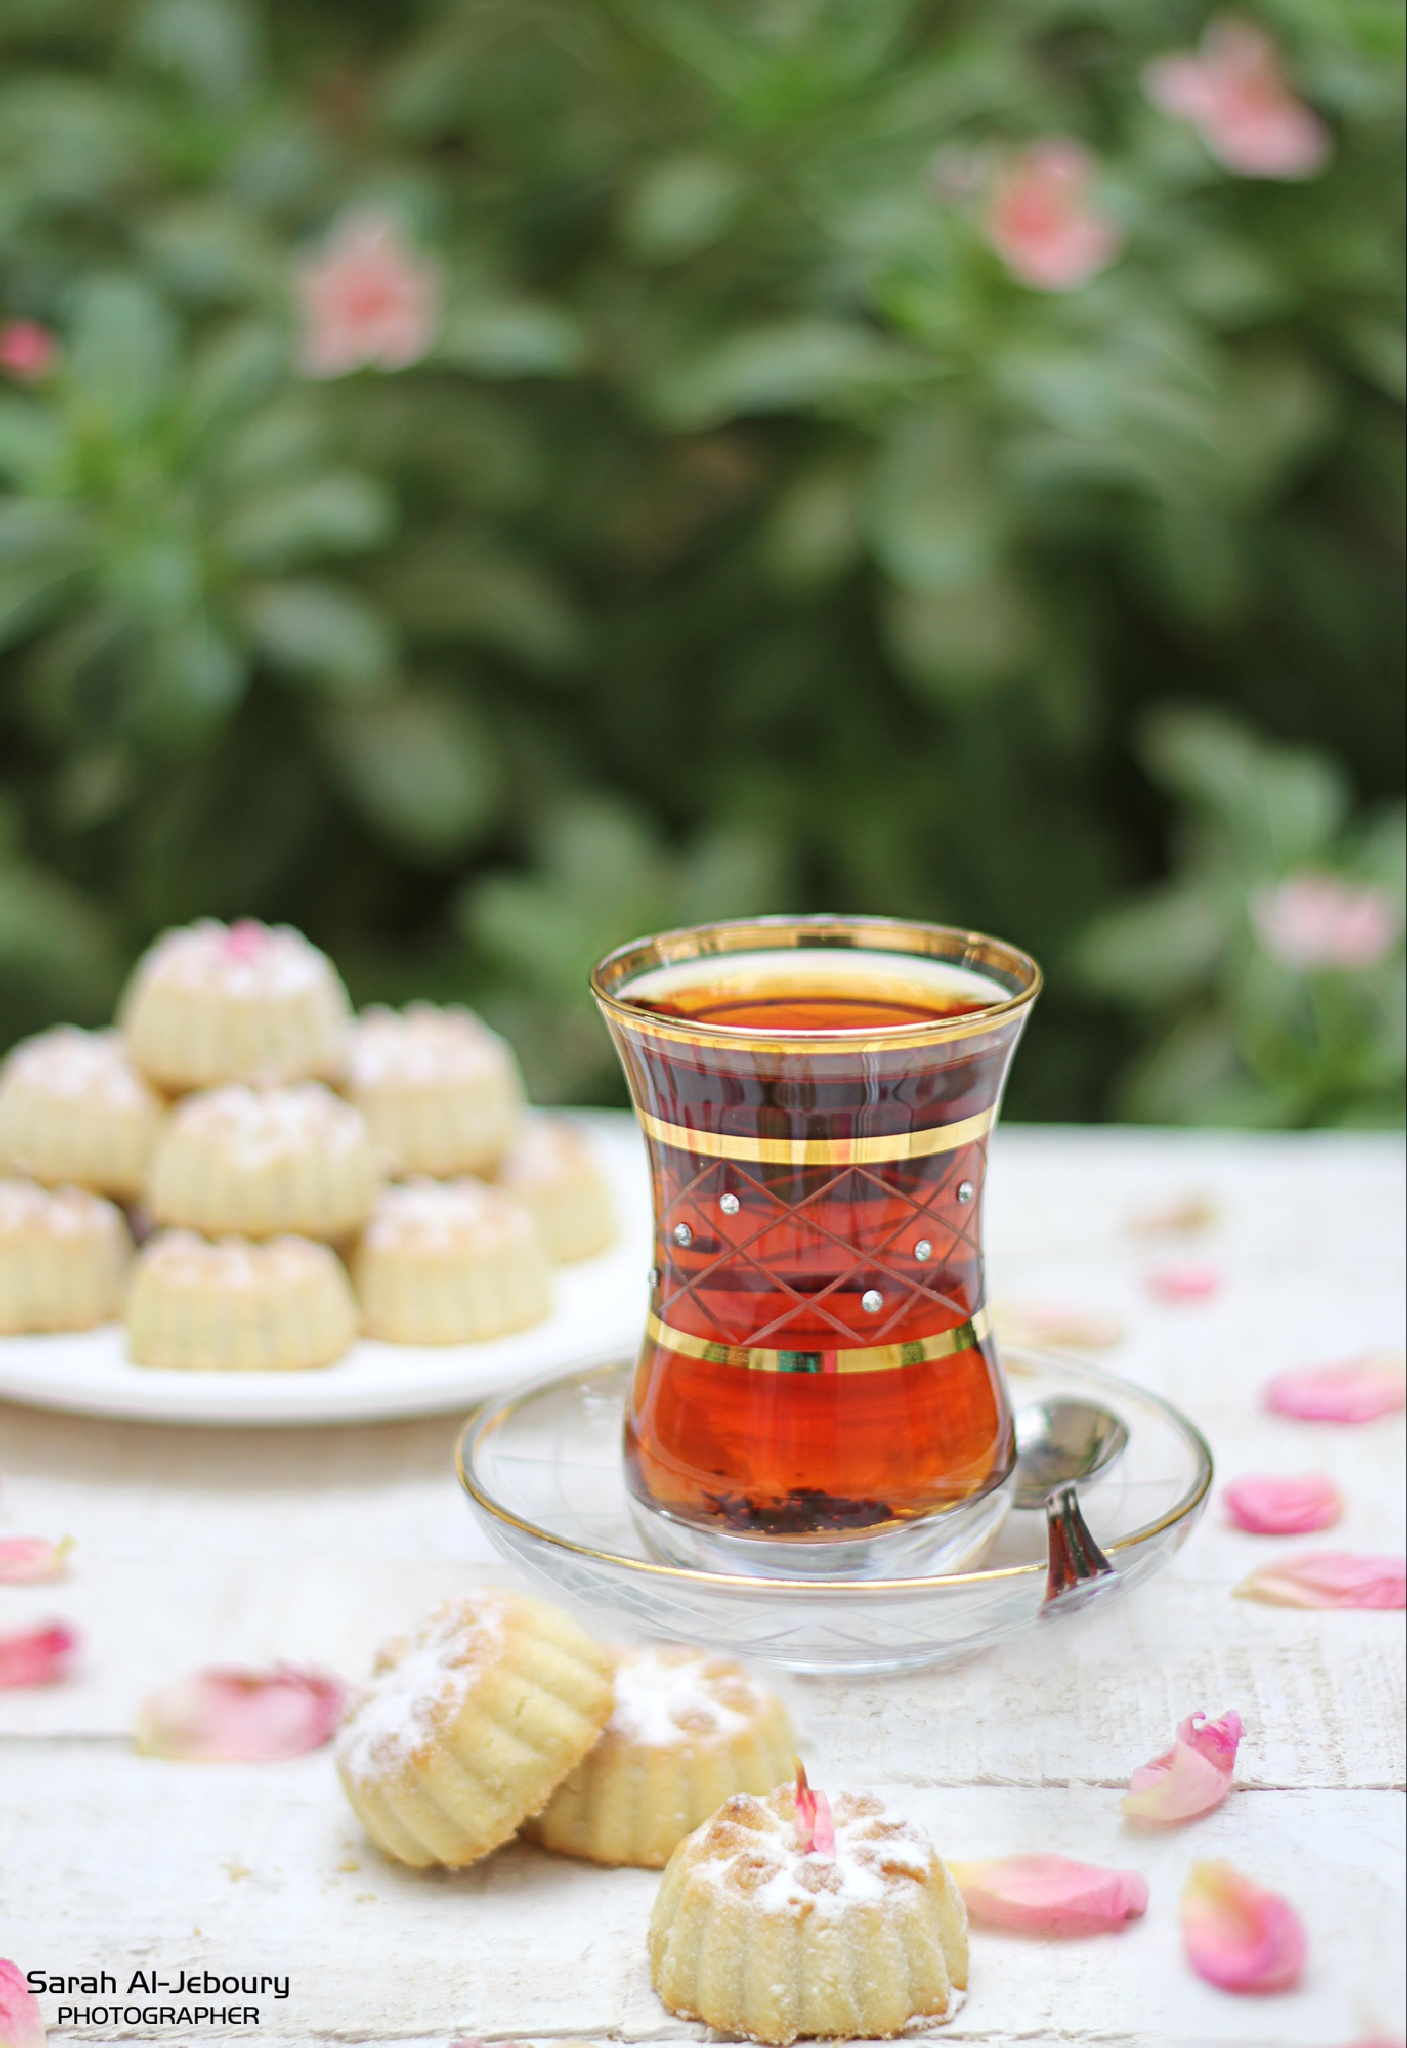 Iraqi tea by Sarah Aljeboury